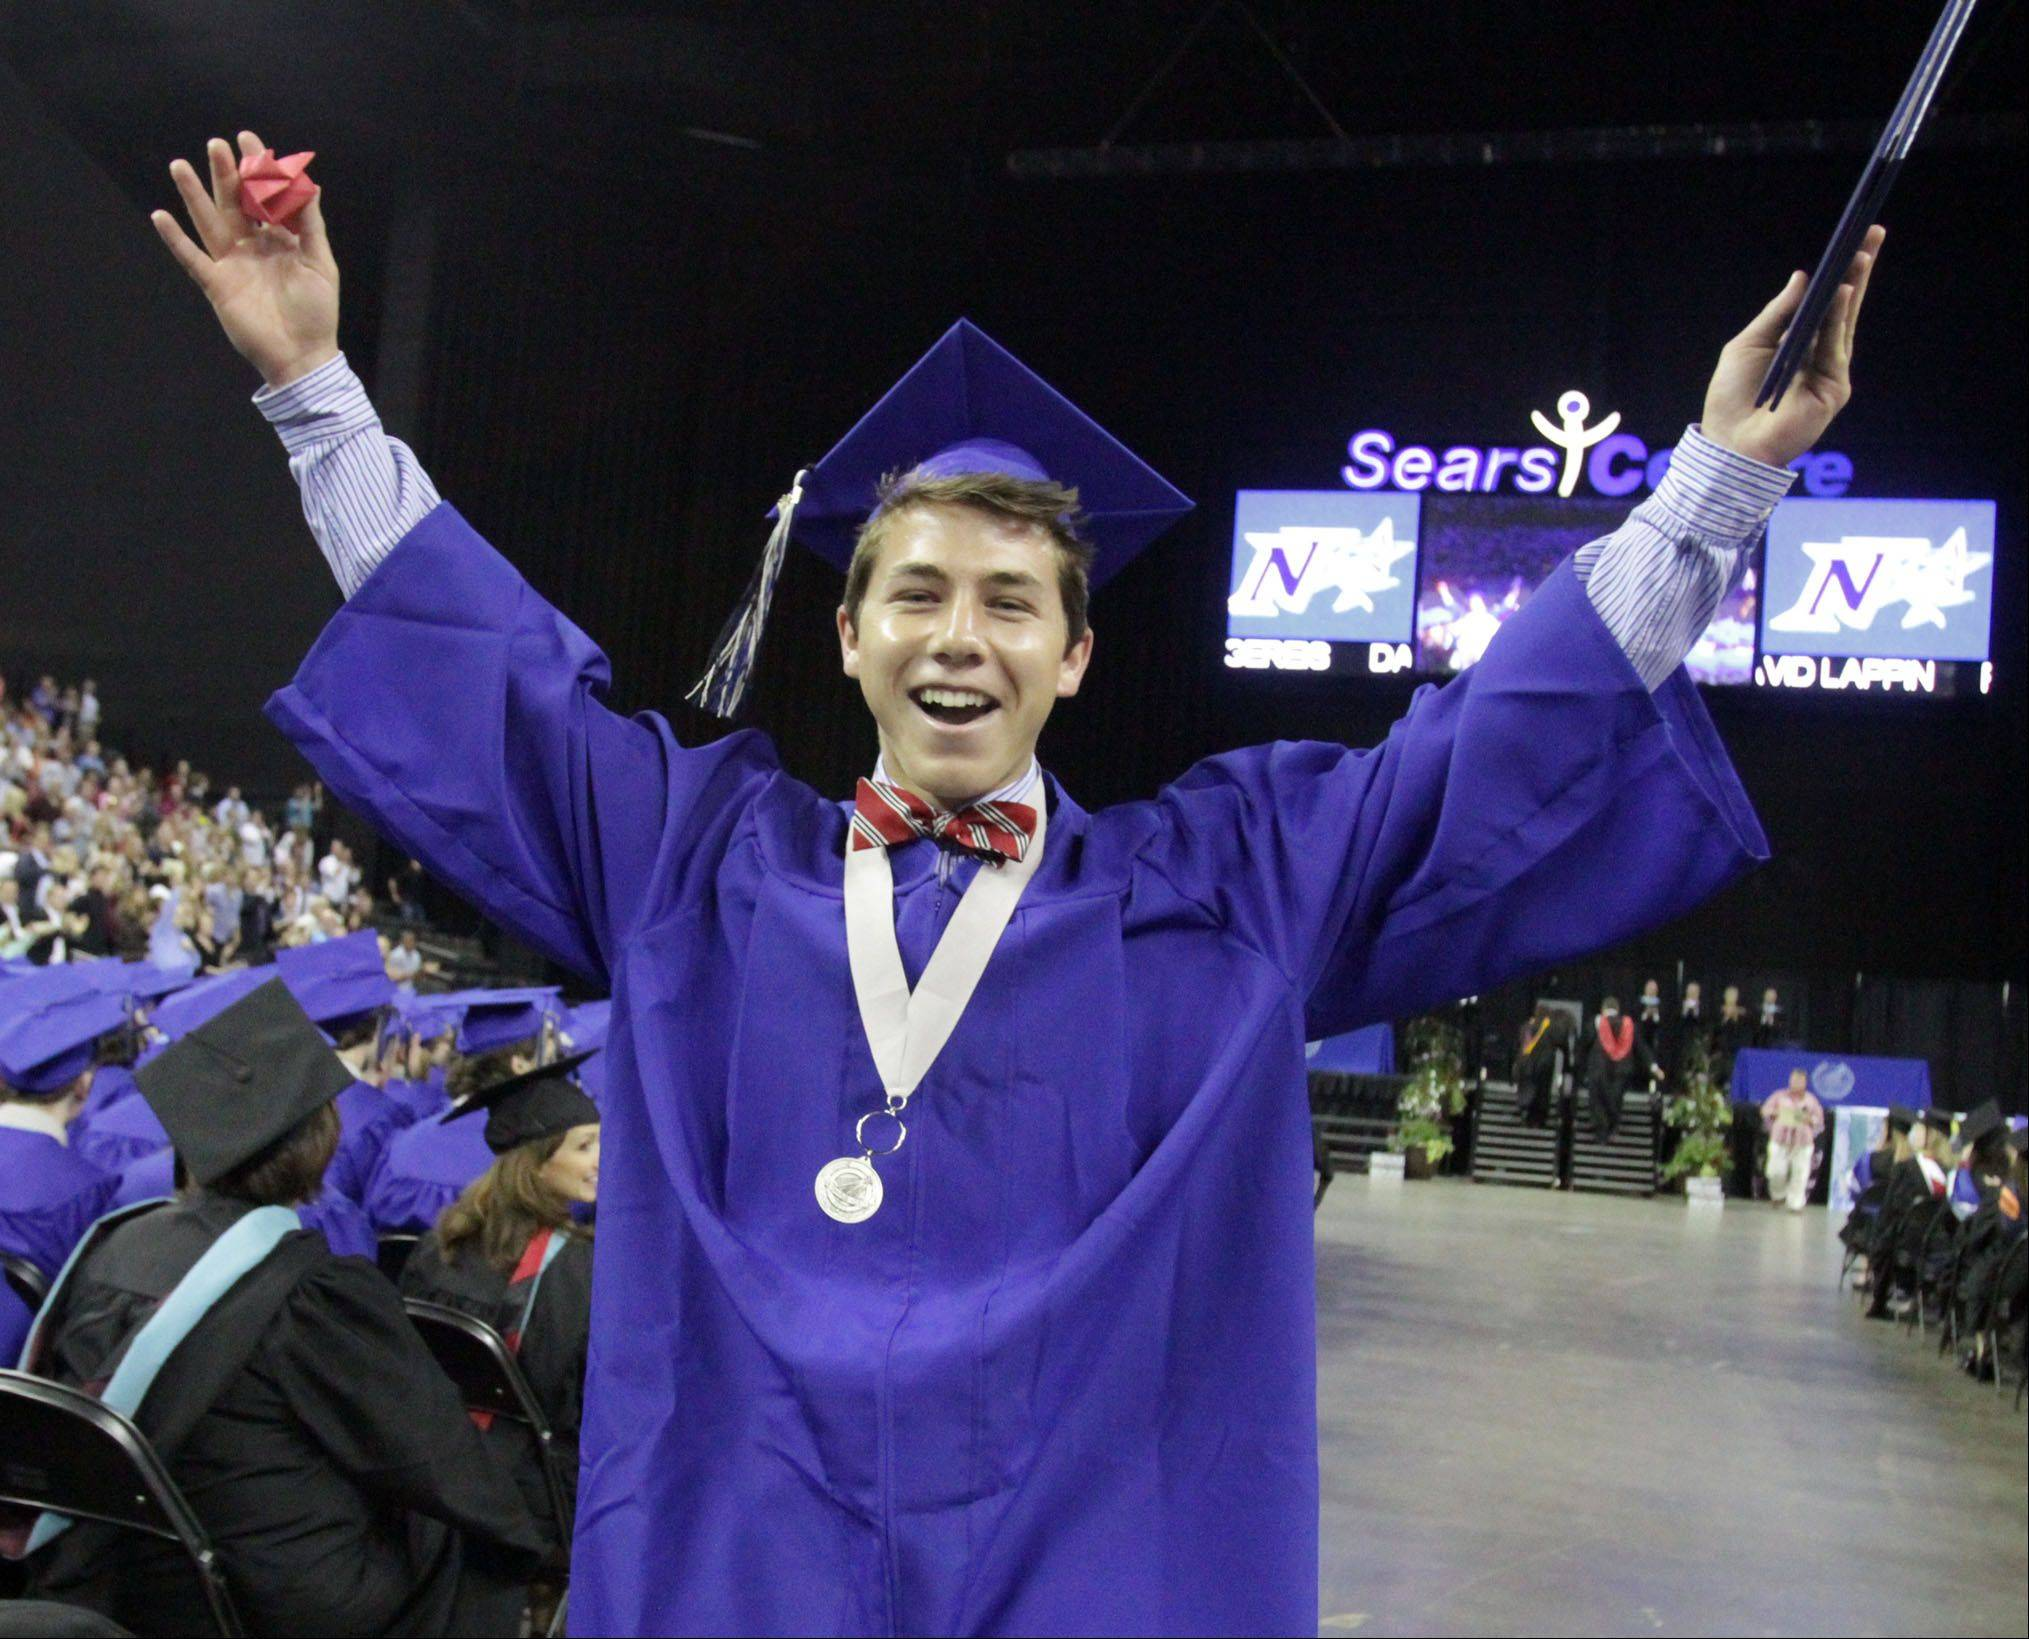 Connor Lefelstein celebrates being the last St Charles North High School senior to receive his diploma during the school's commencement ceremony at the Sears Centre in Hoffman Estates on Sunday, May 26, 2013.